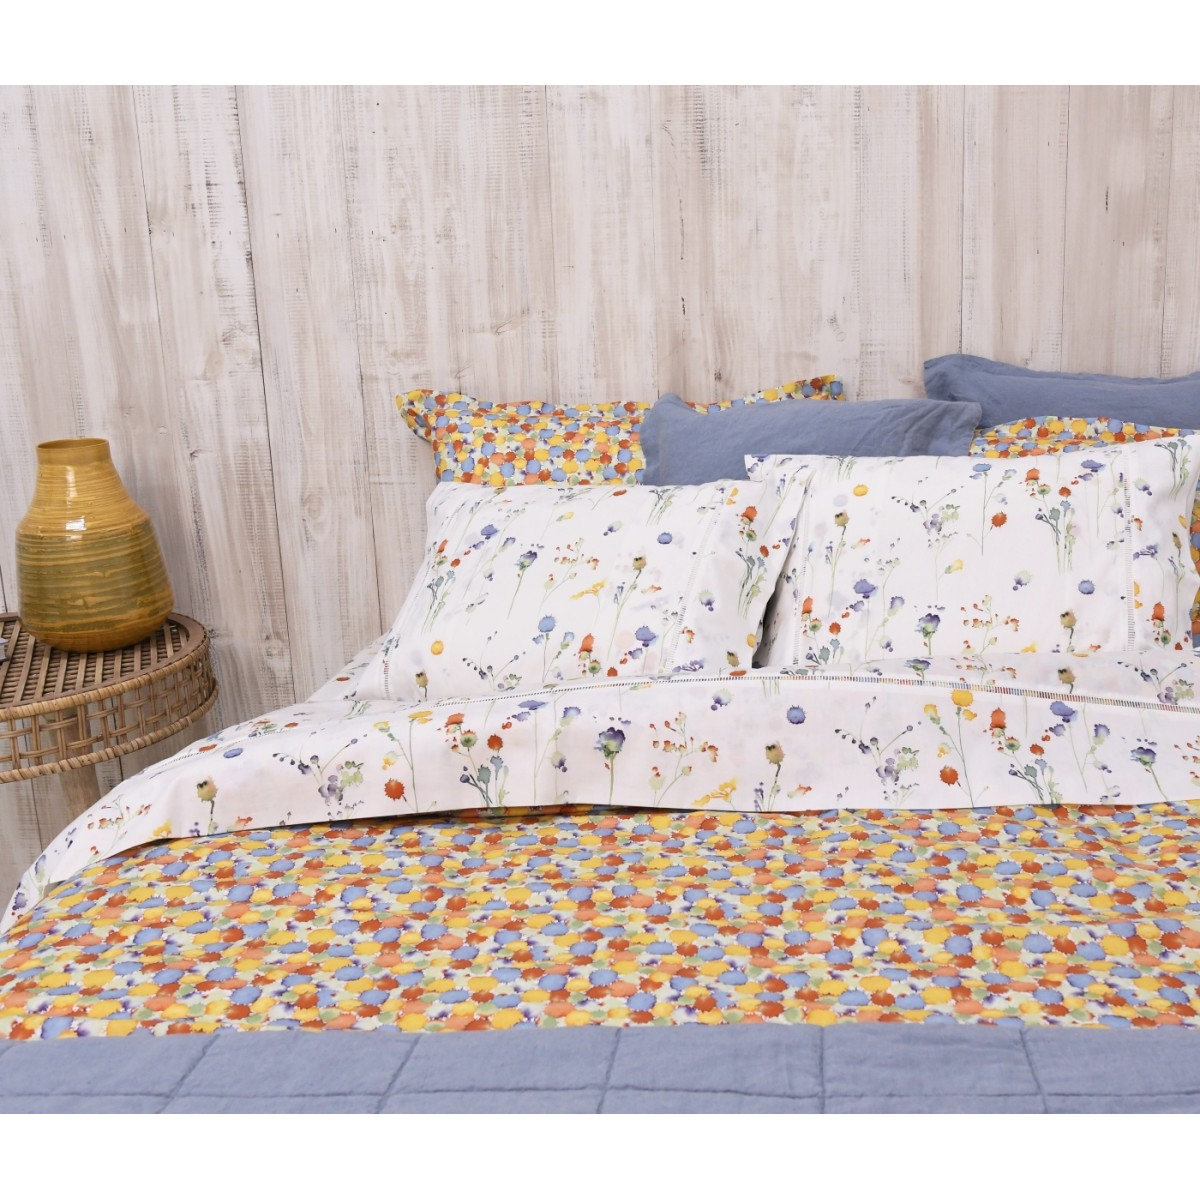 Duvet Cover Set, Confetti